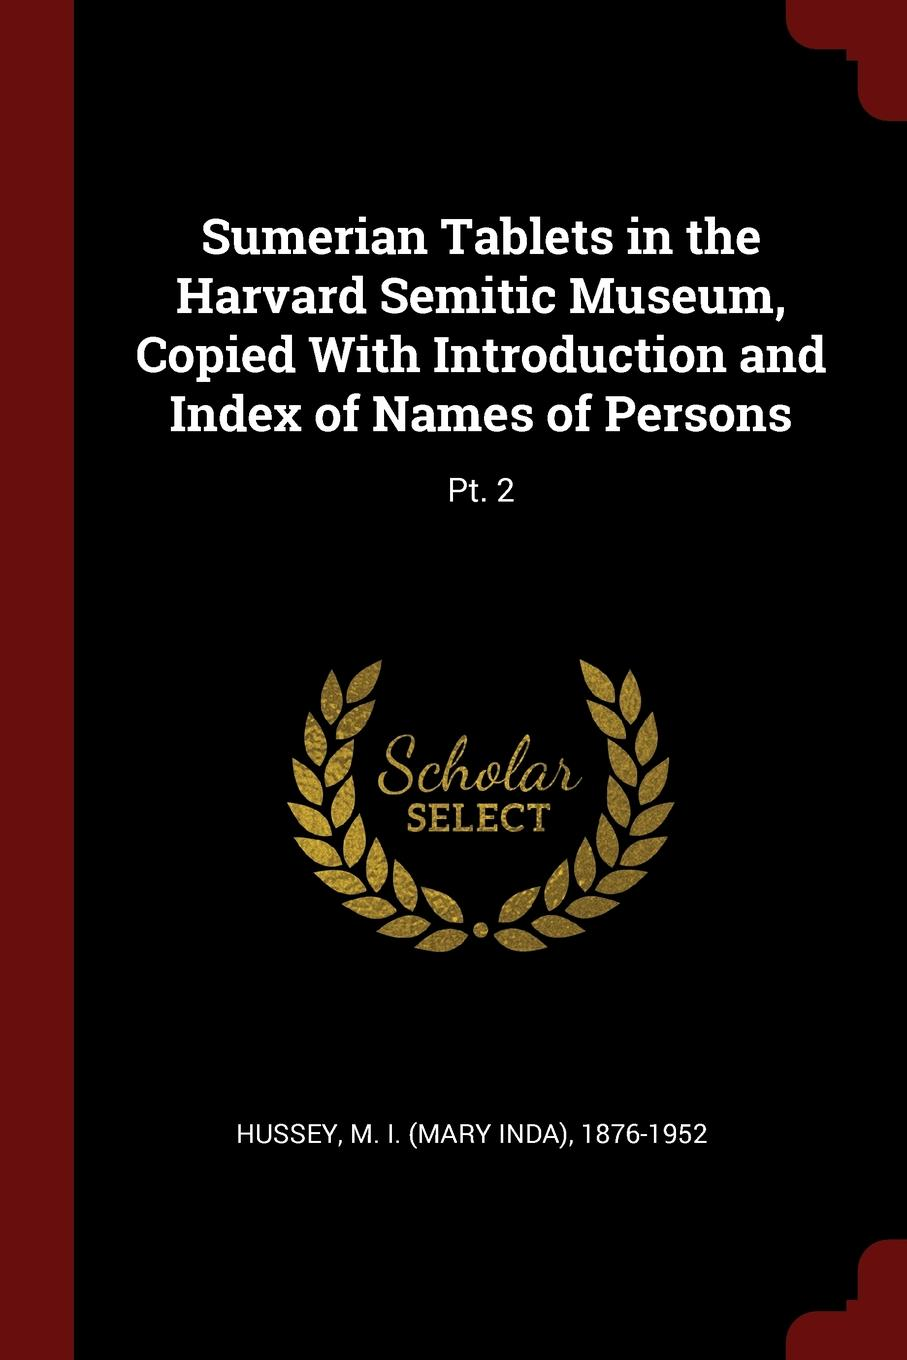 M 1876-1952 Hussey Sumerian Tablets in the Harvard Semitic Museum, Copied With Introduction and Index of Names of Persons. Pt. 2 m hussey sumerian tablets in the harvard semitic museum part 1